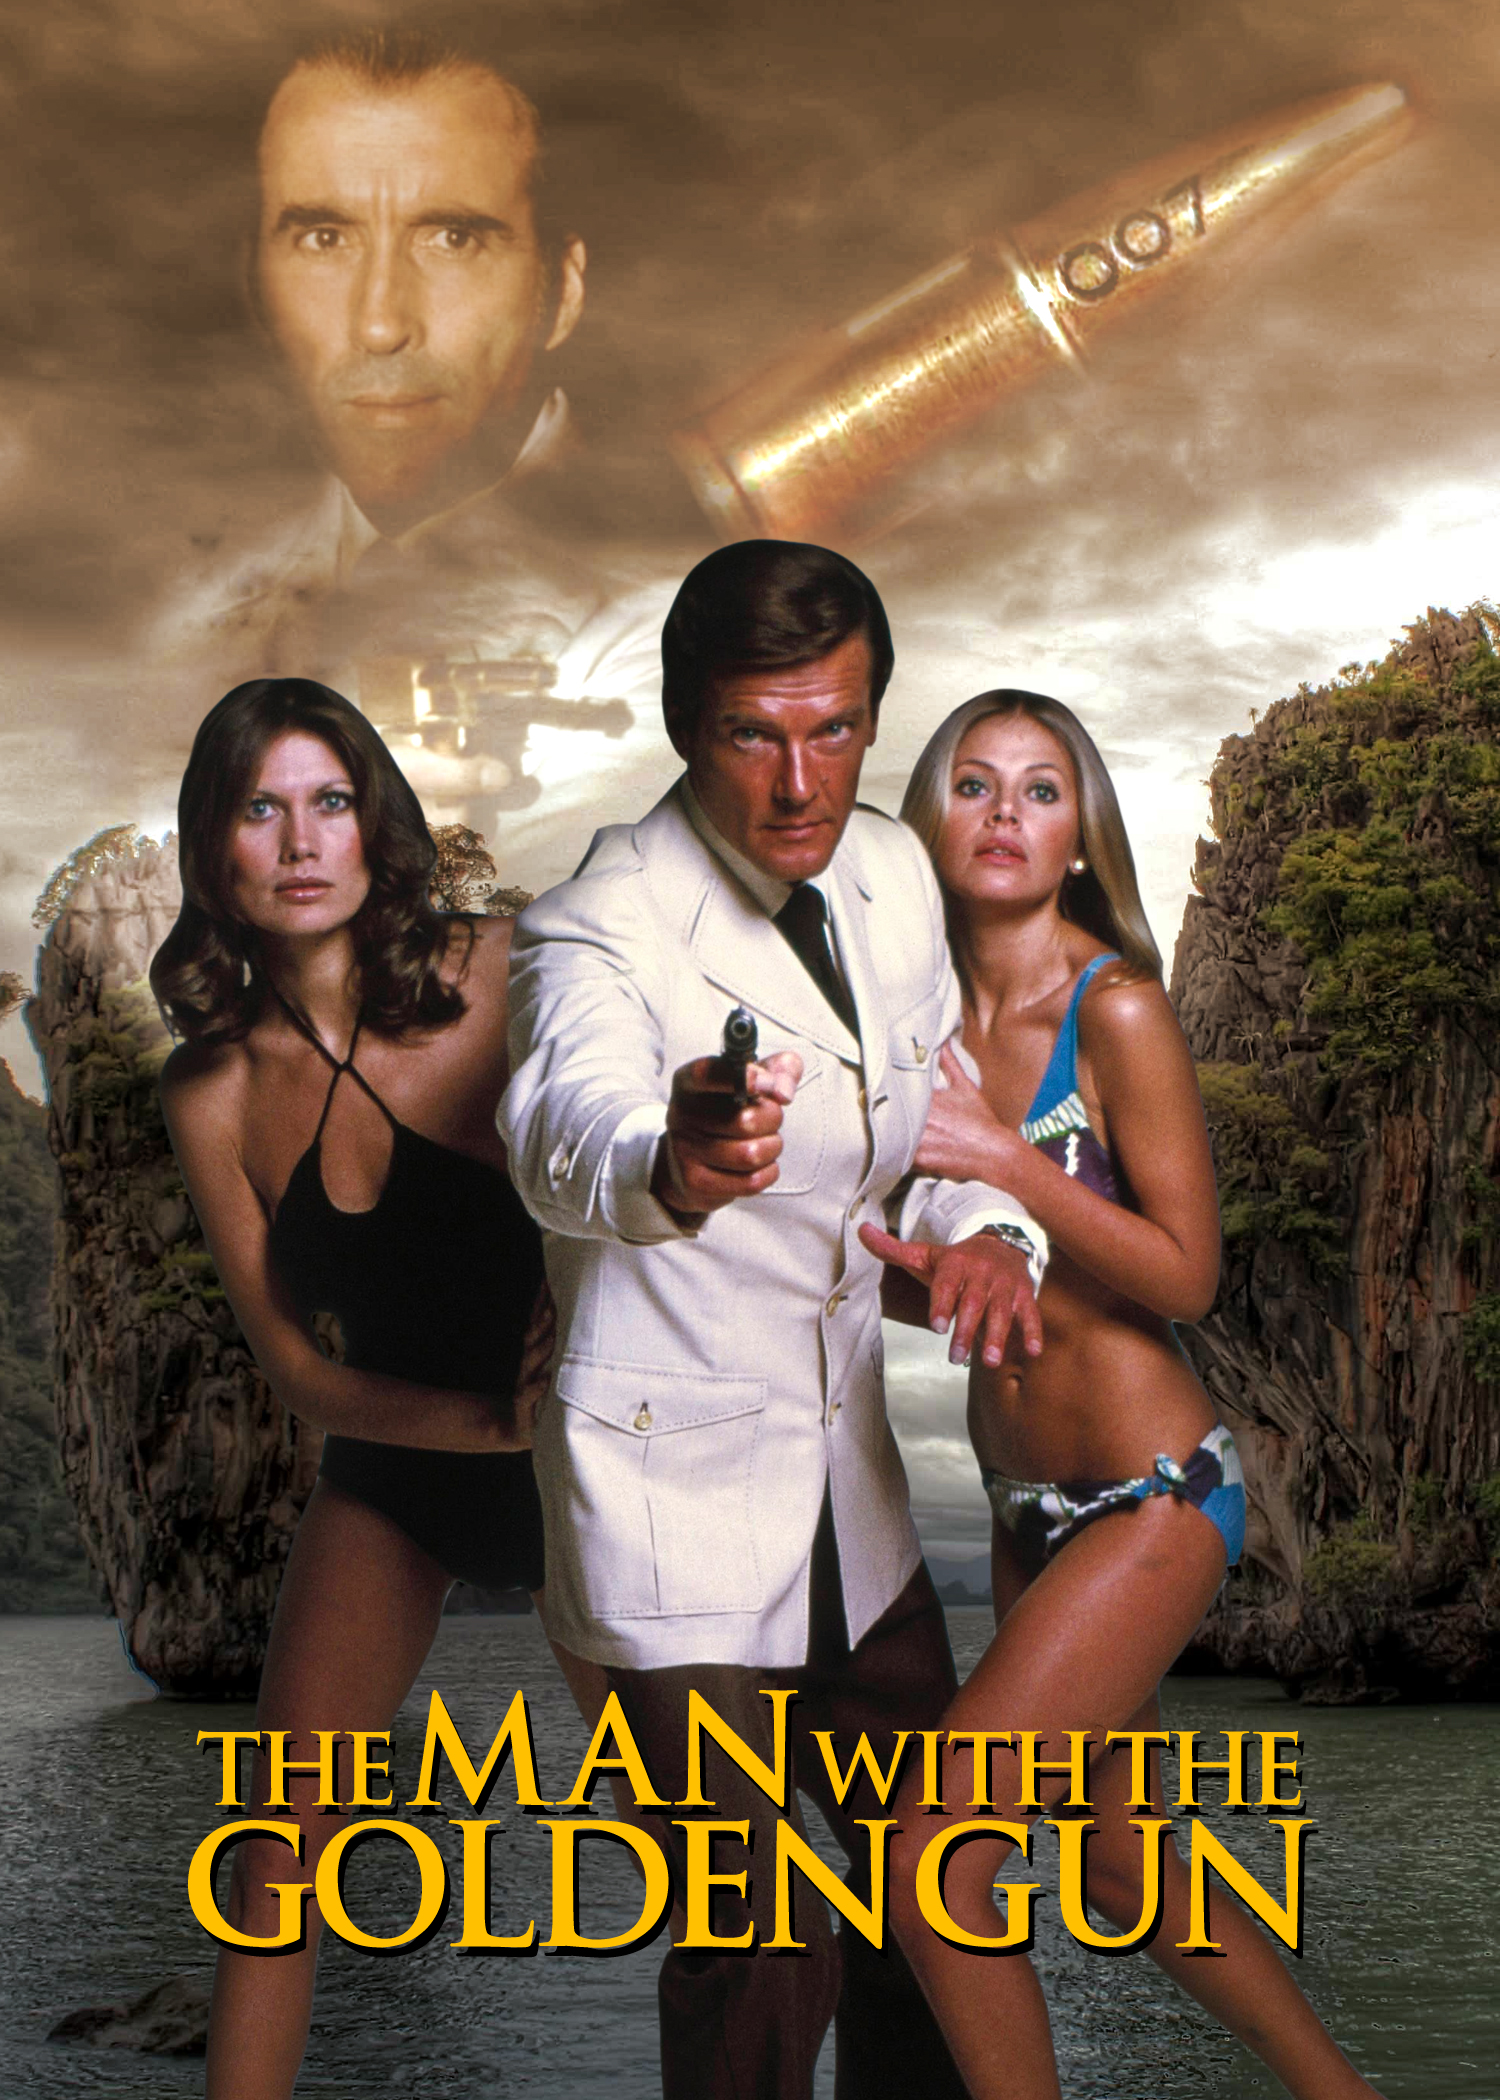 the_man_with_the_golden_gun_poster_by_comandercool22-d67r0gb.jpg